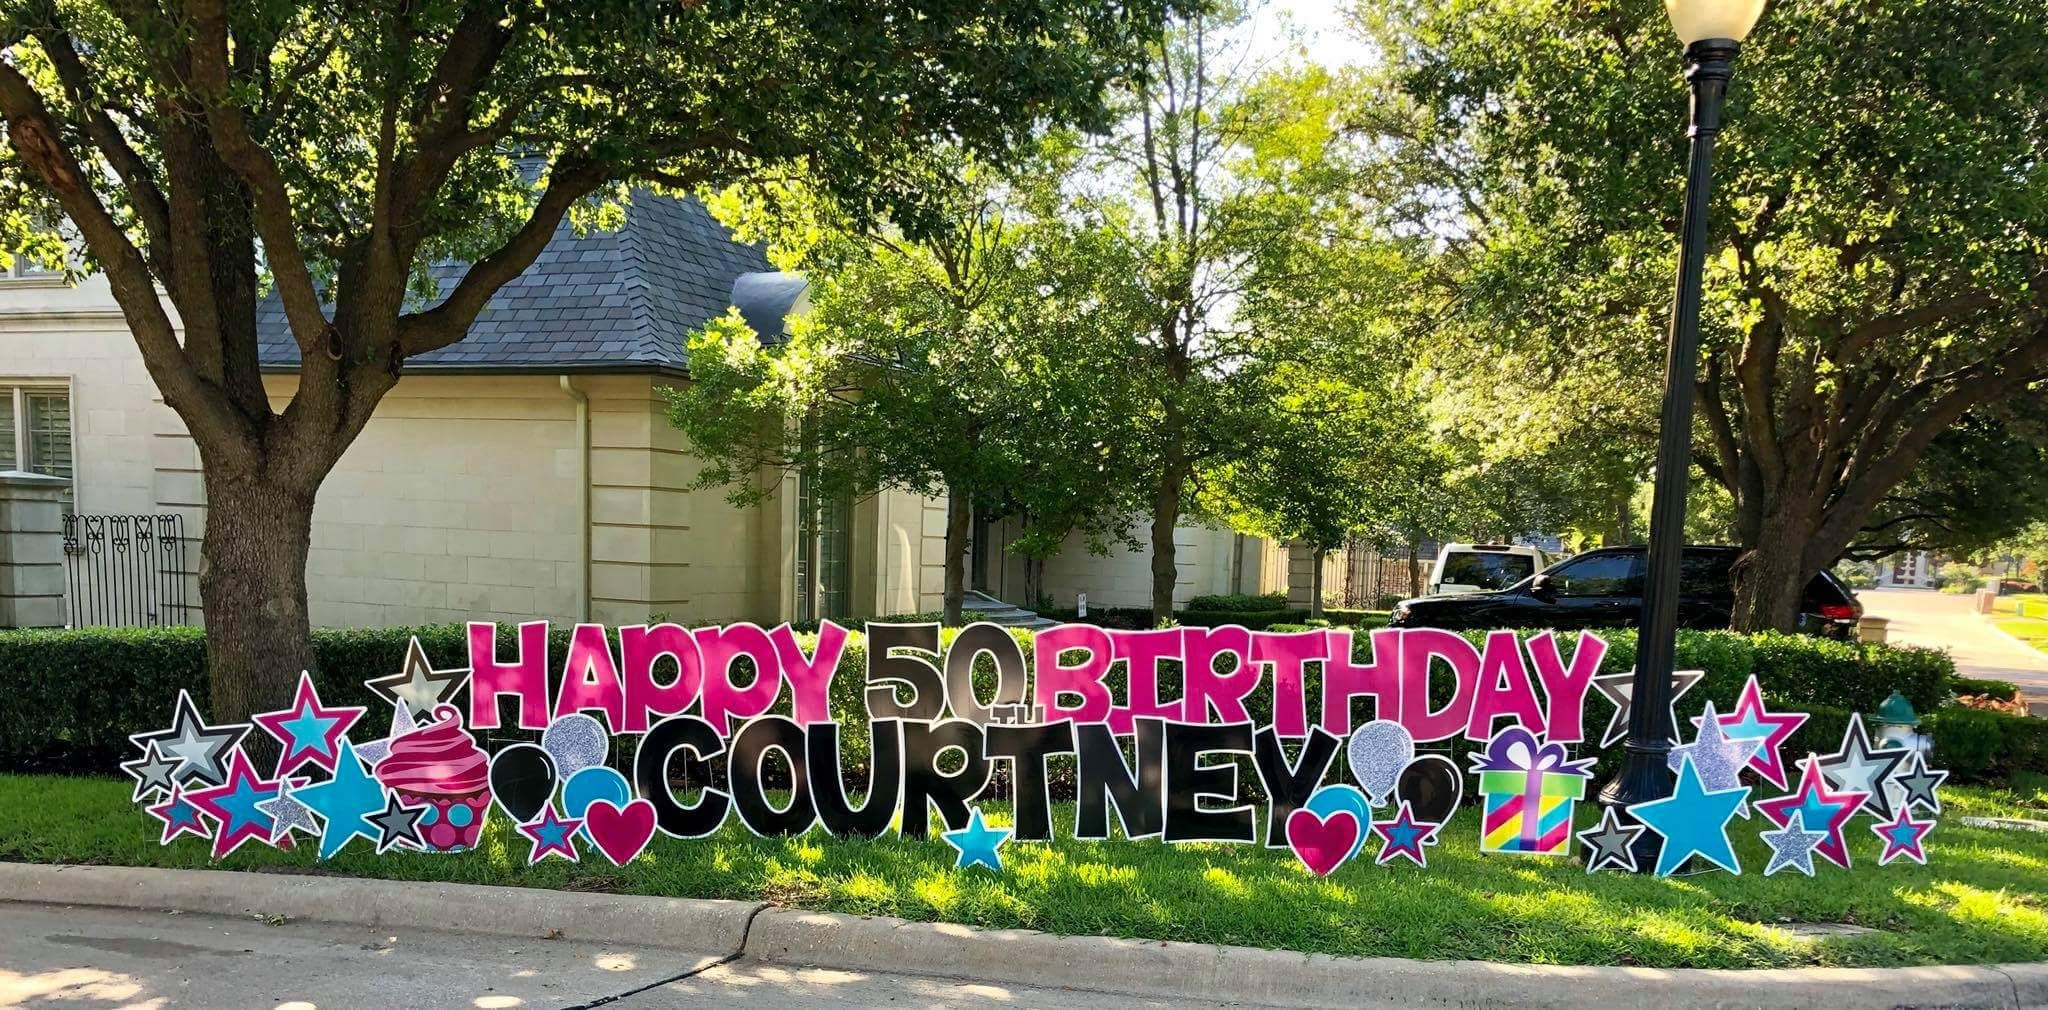 Celebrate big with yard signs from card my yard